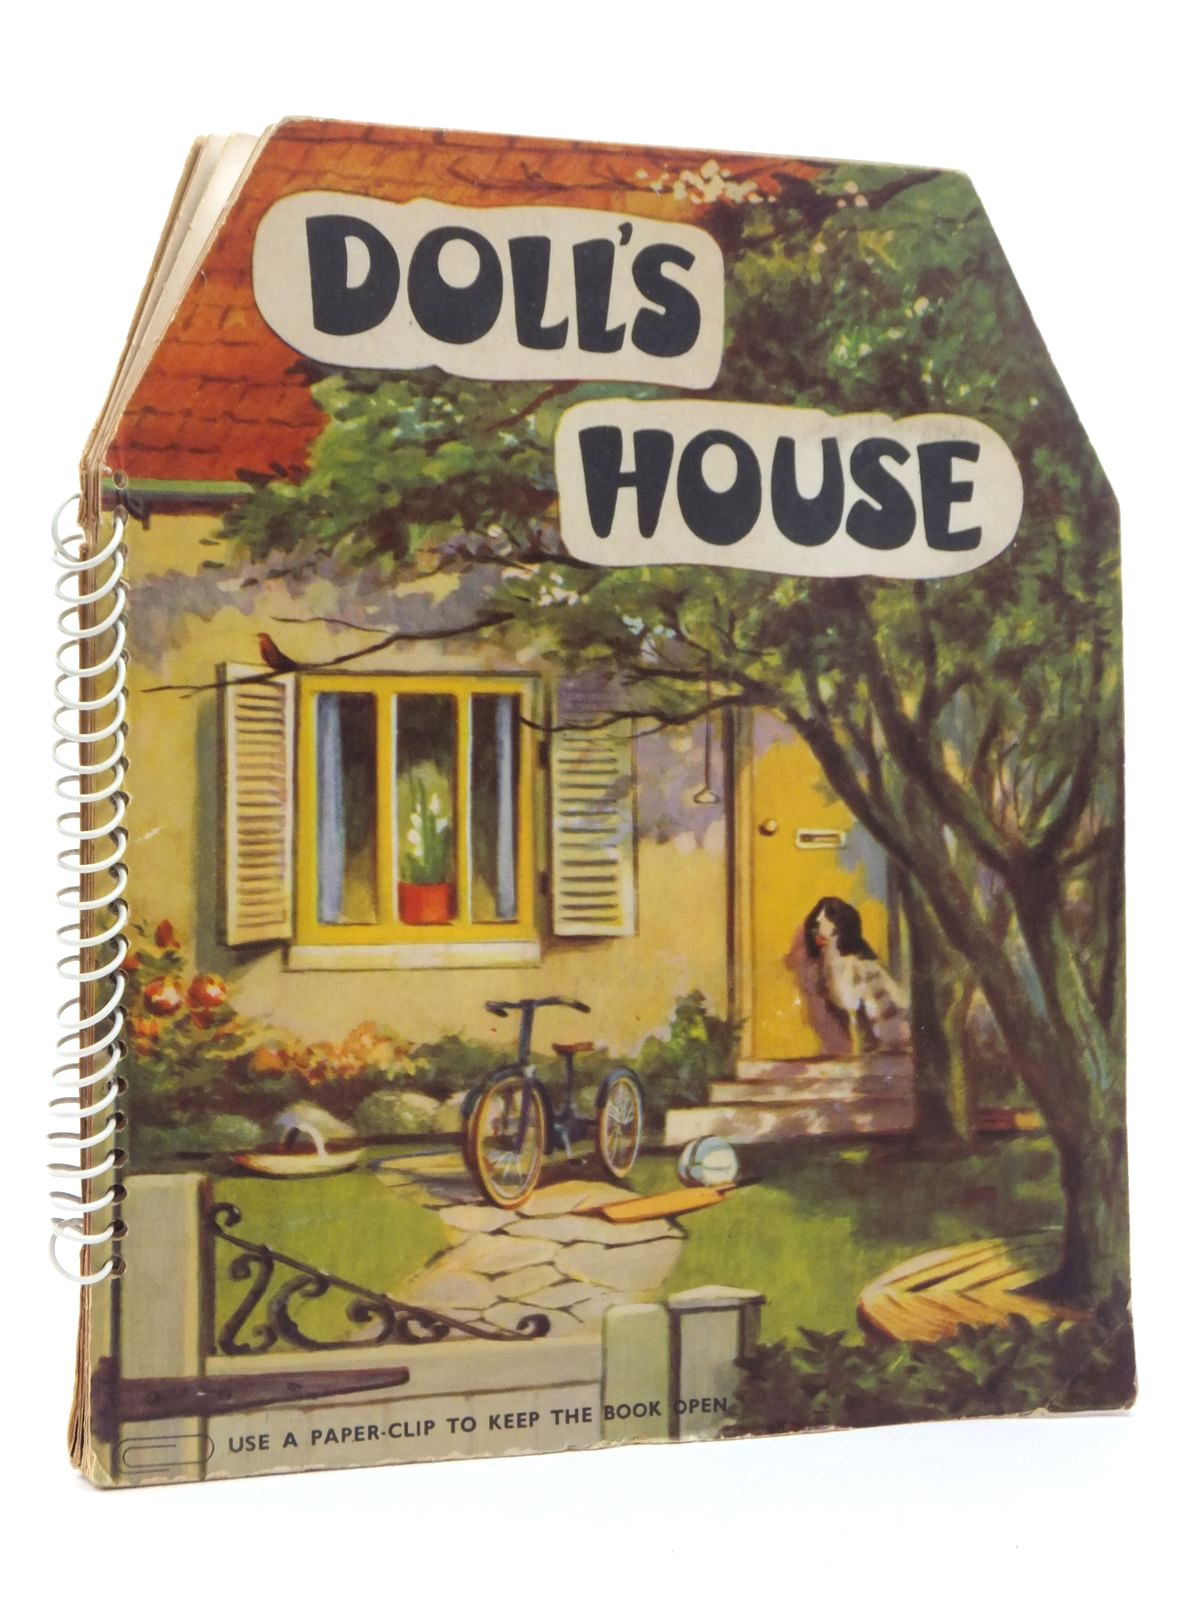 Photo of DOLL'S HOUSE published by Bancroft & Co.(Publishers) Ltd. (STOCK CODE: 1316957)  for sale by Stella & Rose's Books